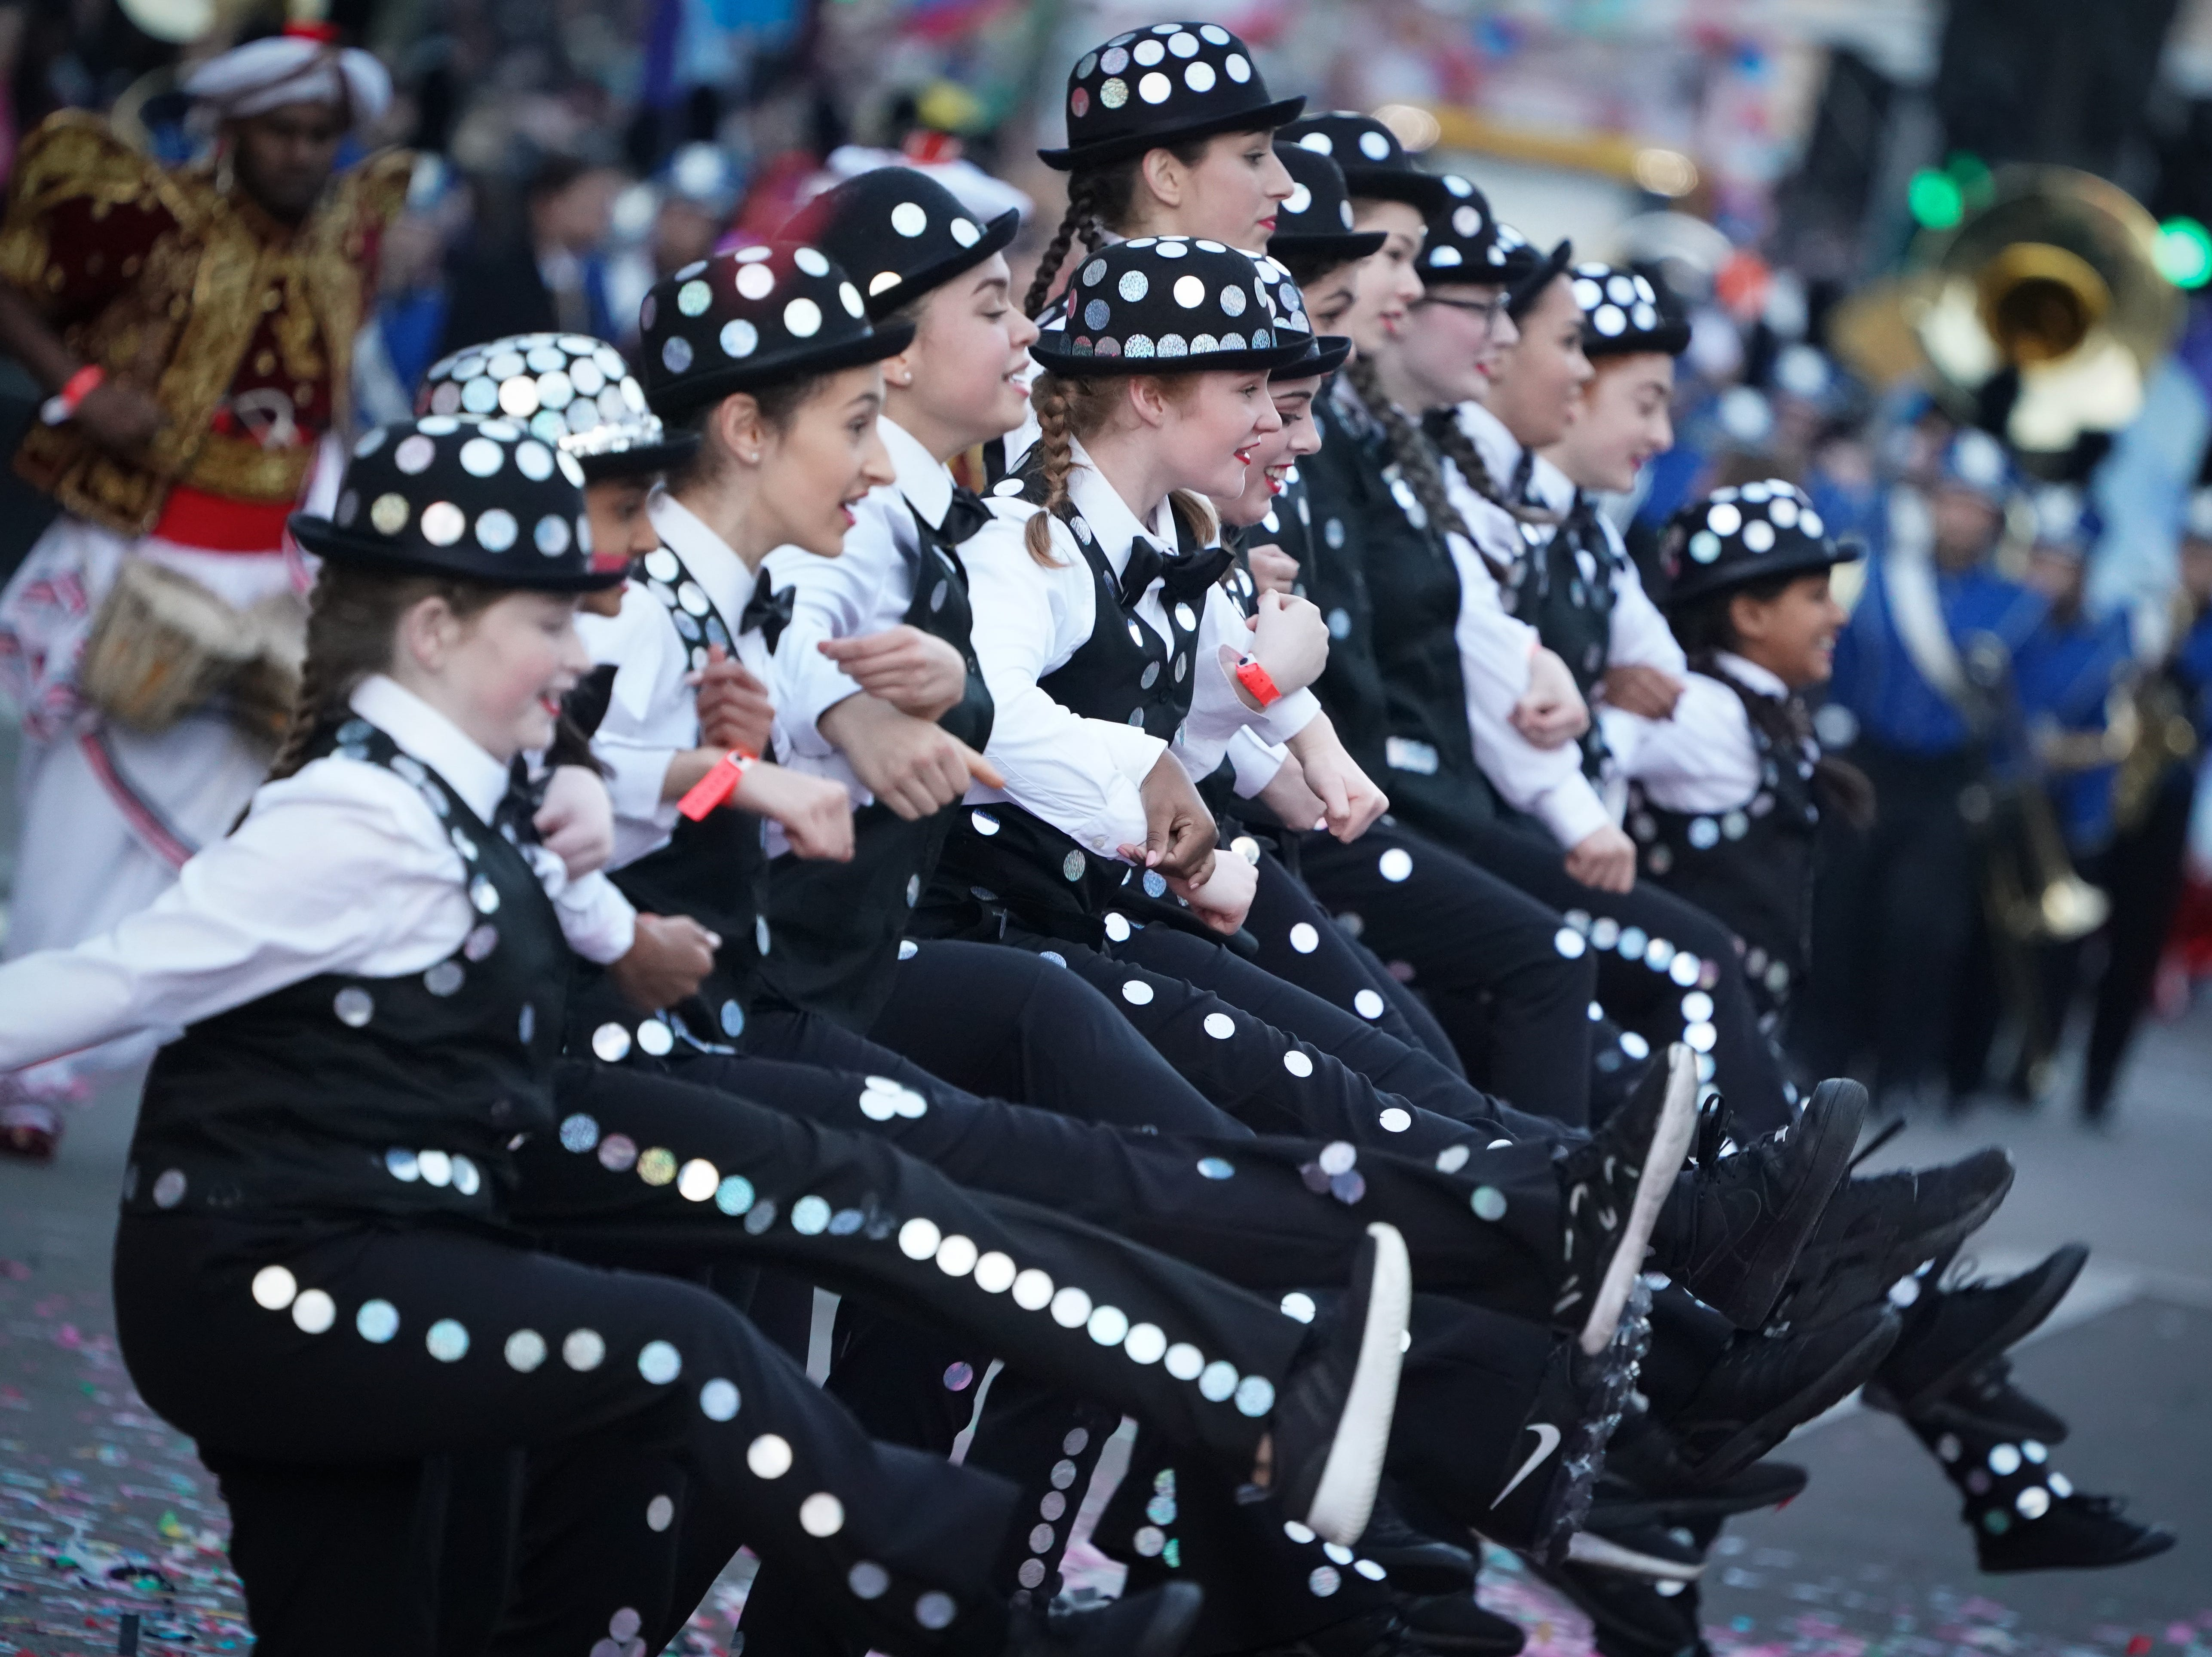 The London New Year's Day Parade takes place January 1, 2019, in the streets on the city's West End. The Vero Beach High School marching band traveled to England to perform, where about 600,000 spectators were expected to fill the streets.